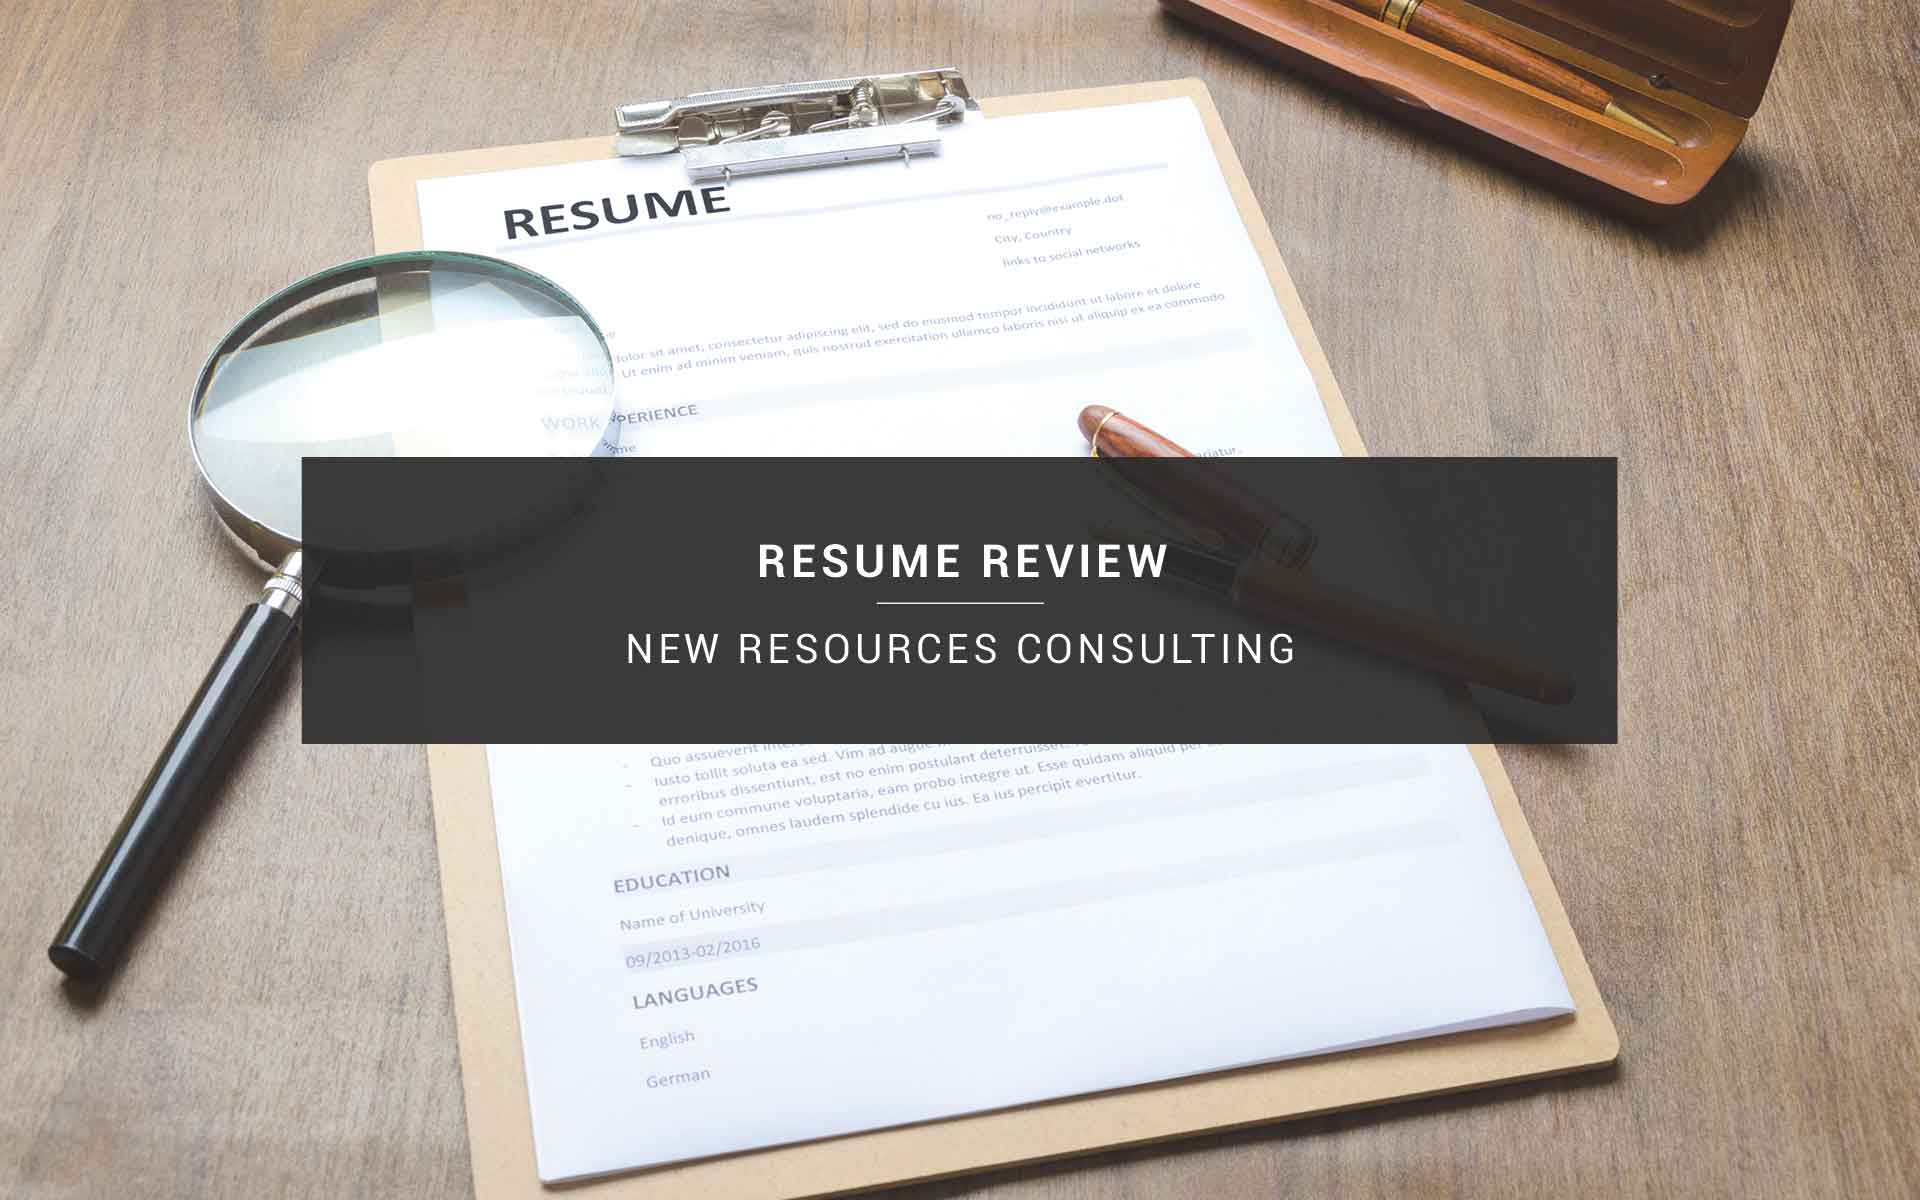 Resume Review | New Resources Consulting